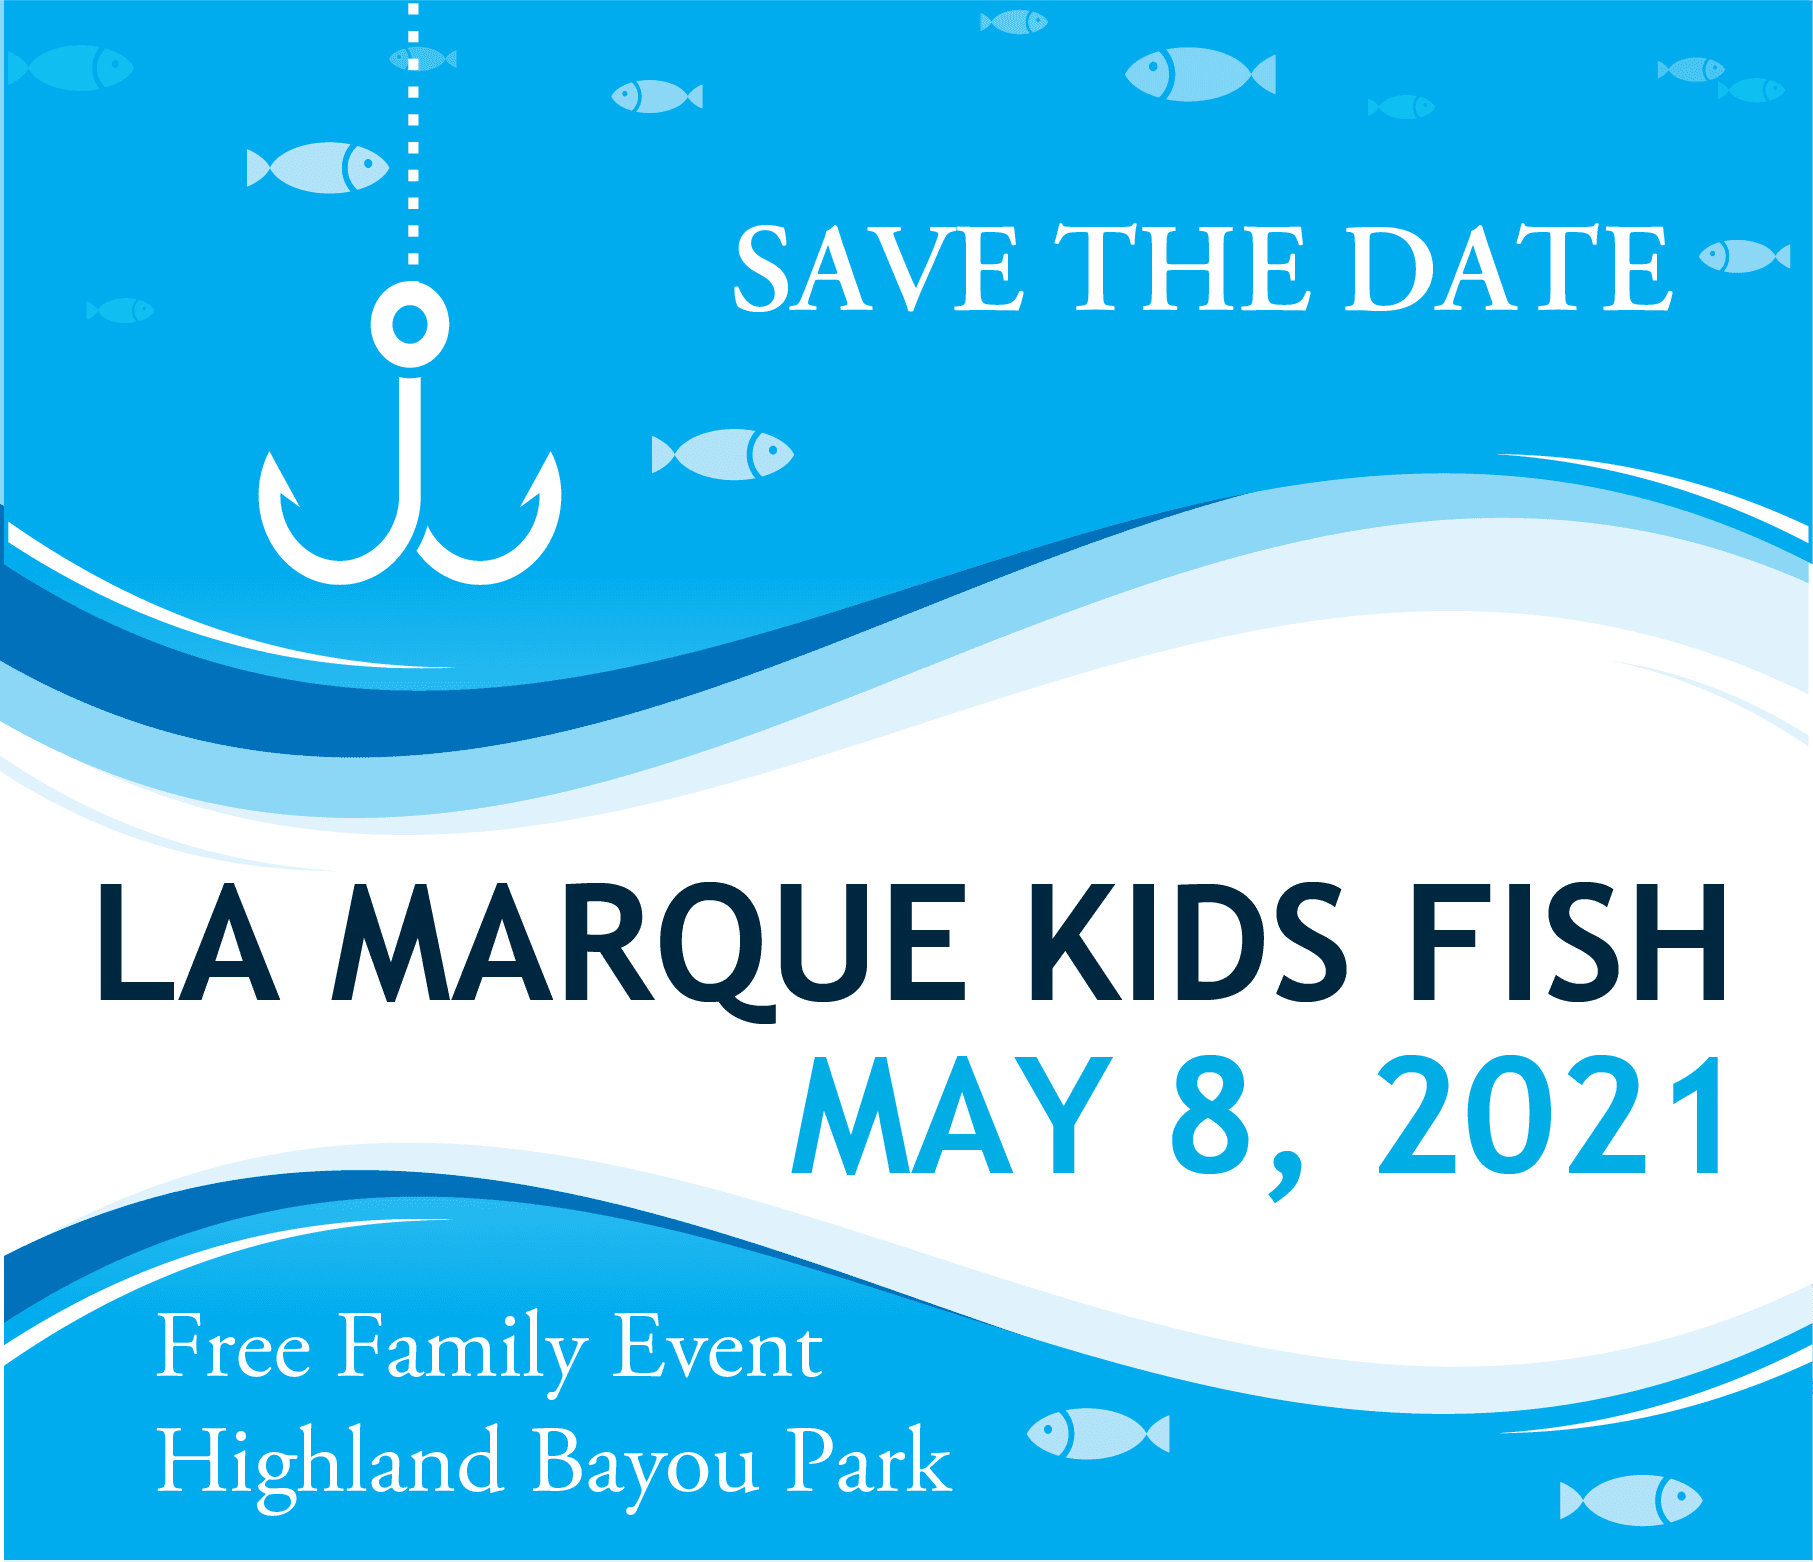 Kids Fish Save the date_242021